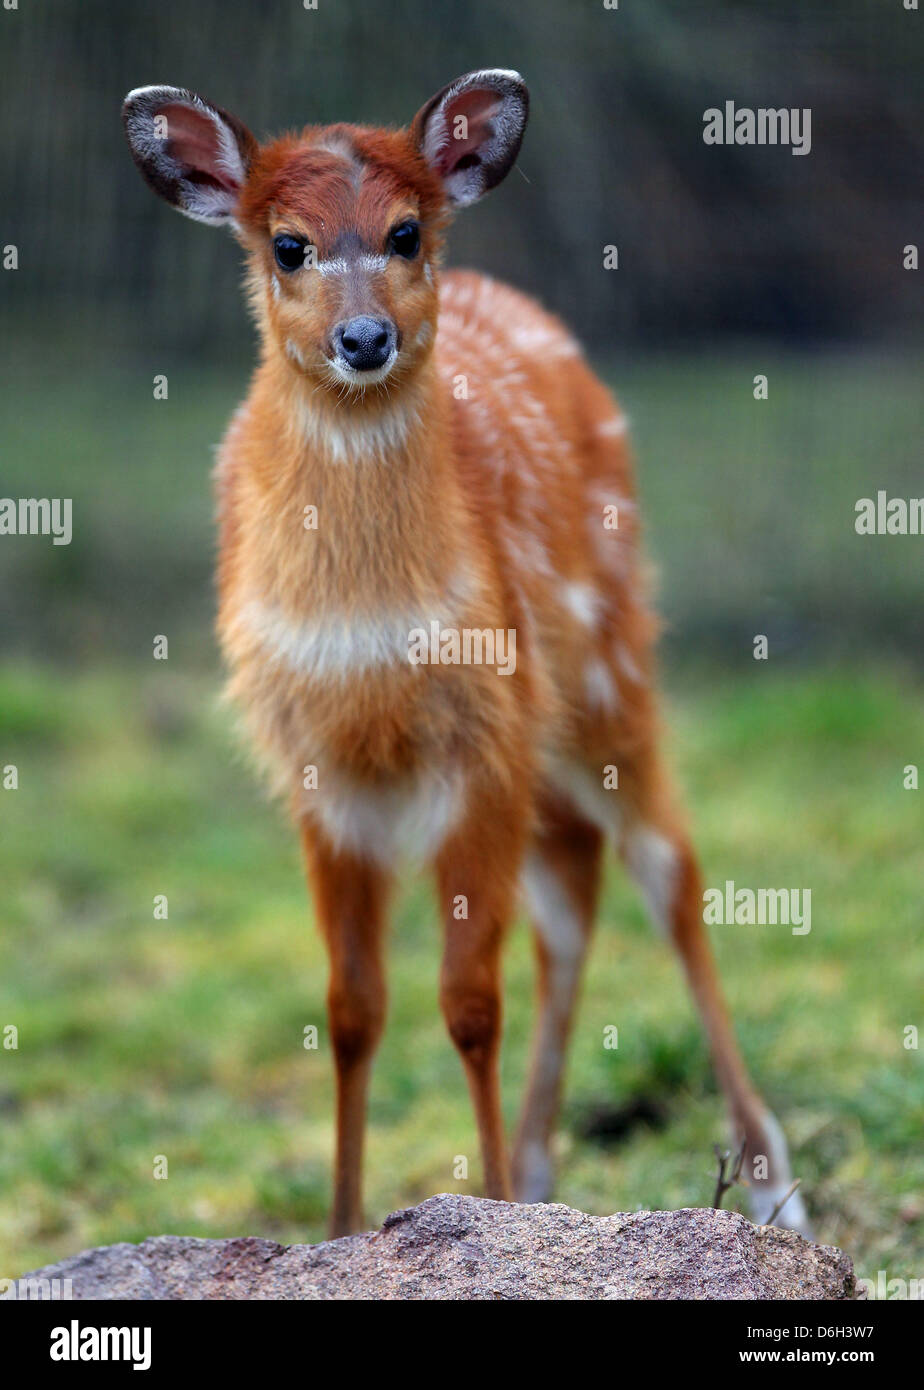 Female Situtunga antelope 'Changa' is pictured at the zoo in Cologne, Germany, 01 March 2012. The marshbuck was Stock Photo